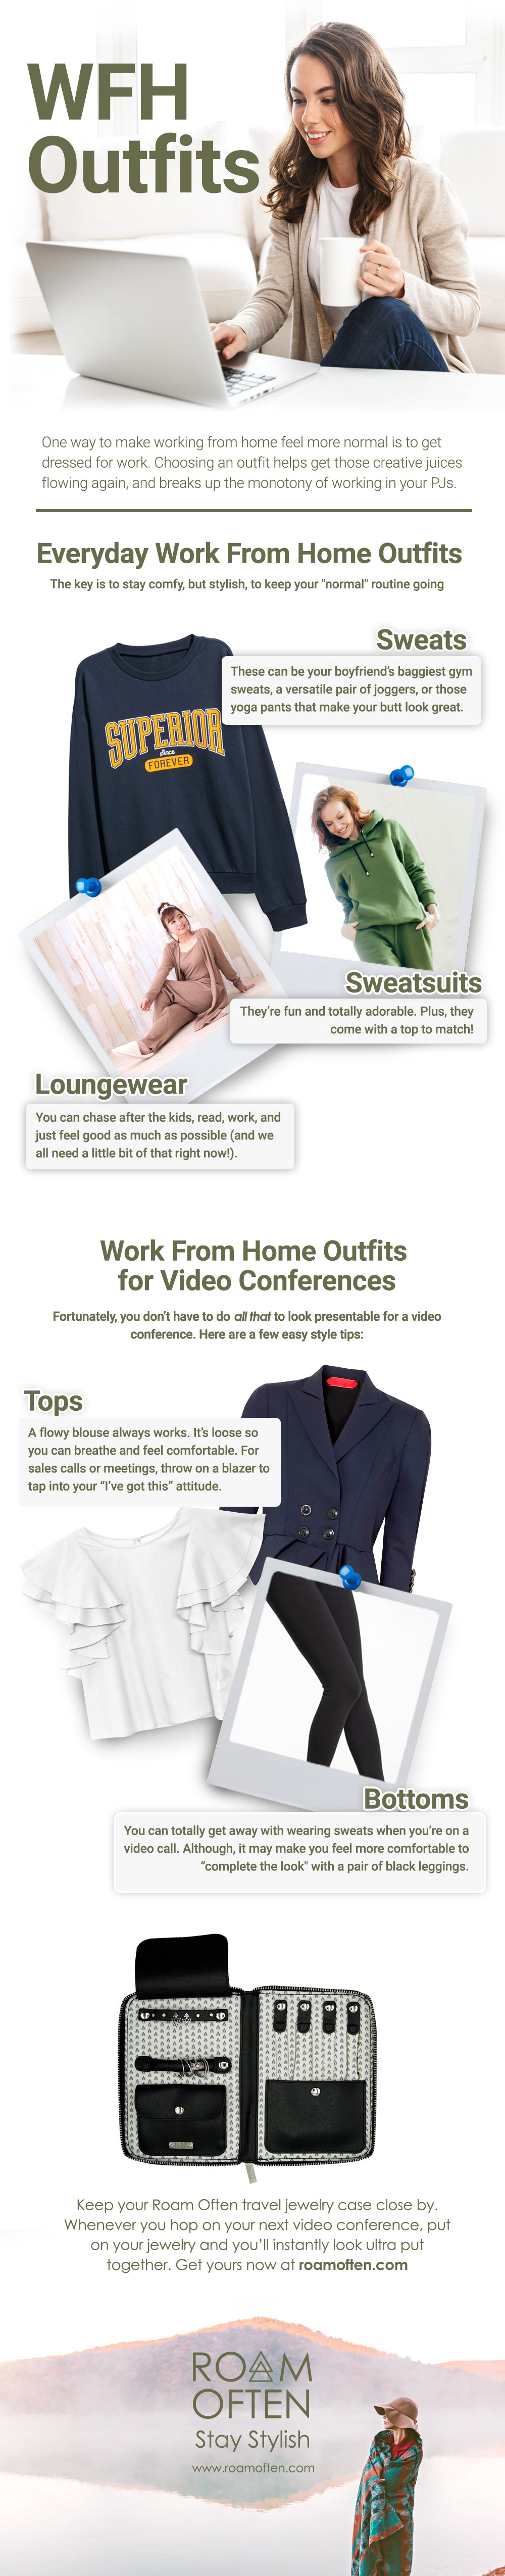 WFH Outfit Tips - Working From Home Outfit Ideas